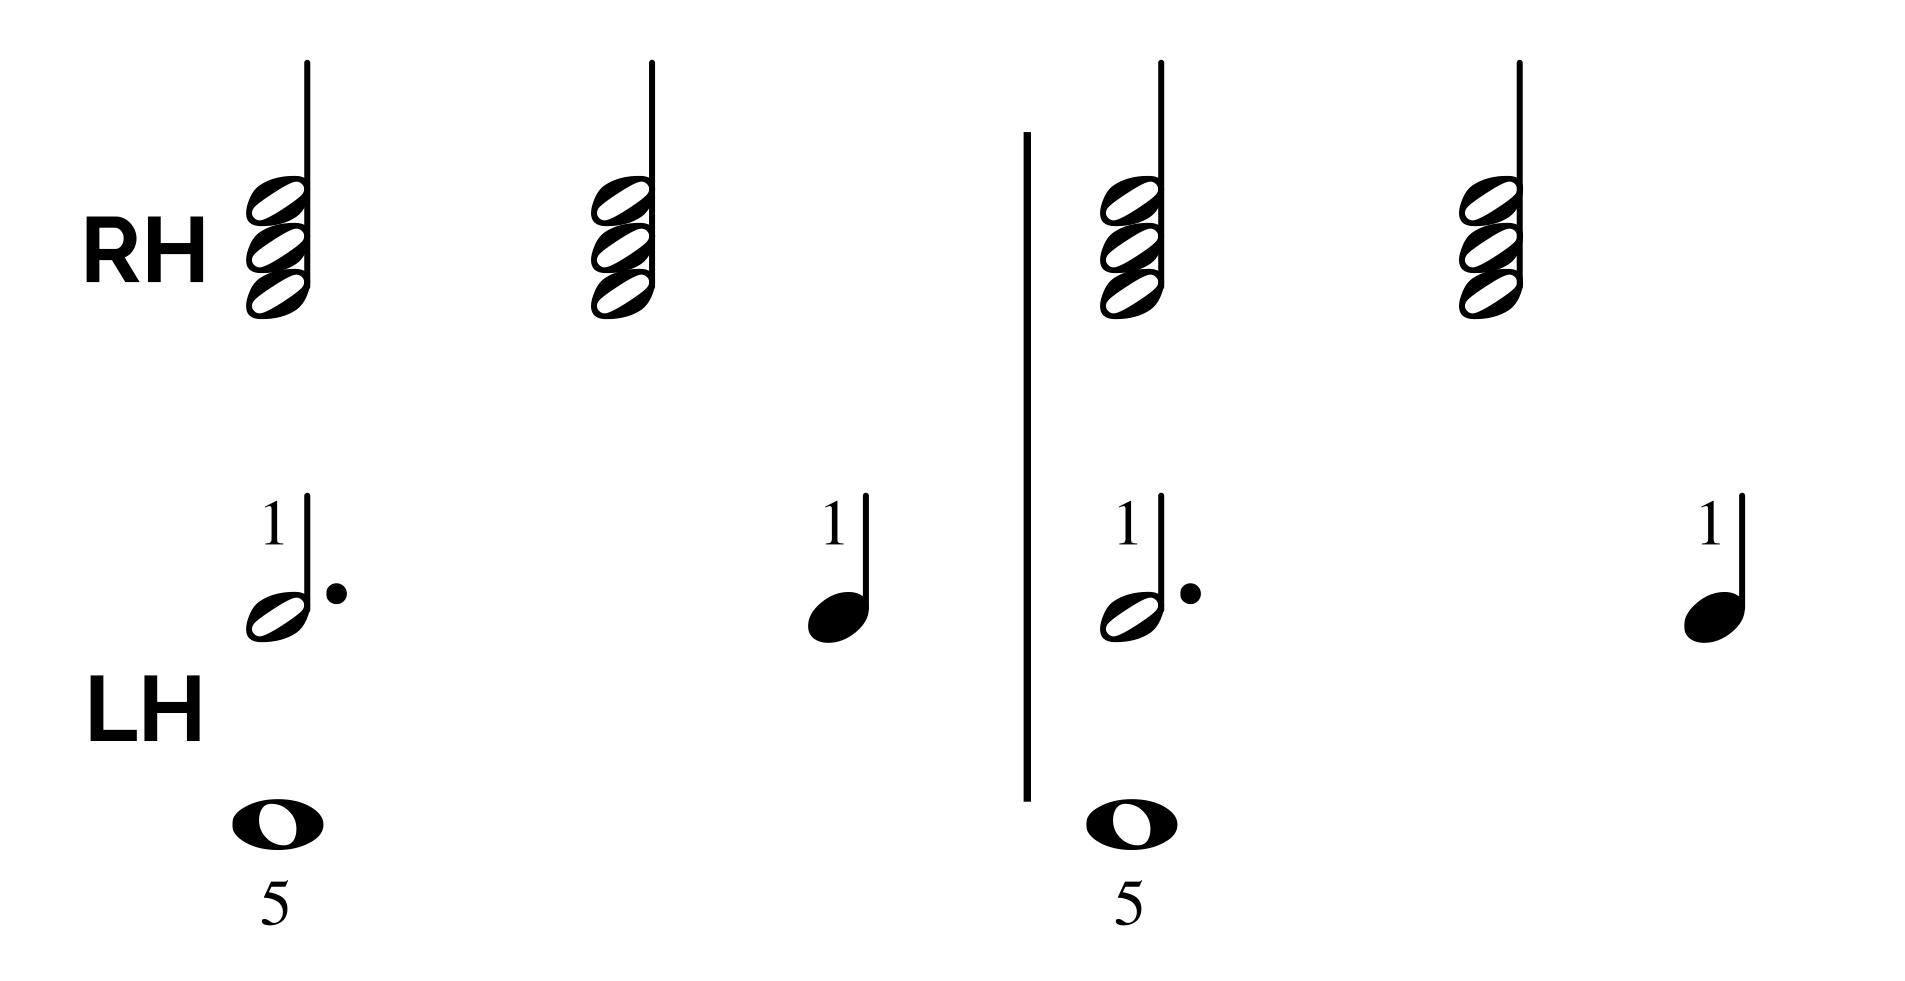 Practice chord progressions for piano the hall music studio as you can see the right hand is playing steady minim half note chords while in the left hand the little finger plays the root note as a single hexwebz Choice Image